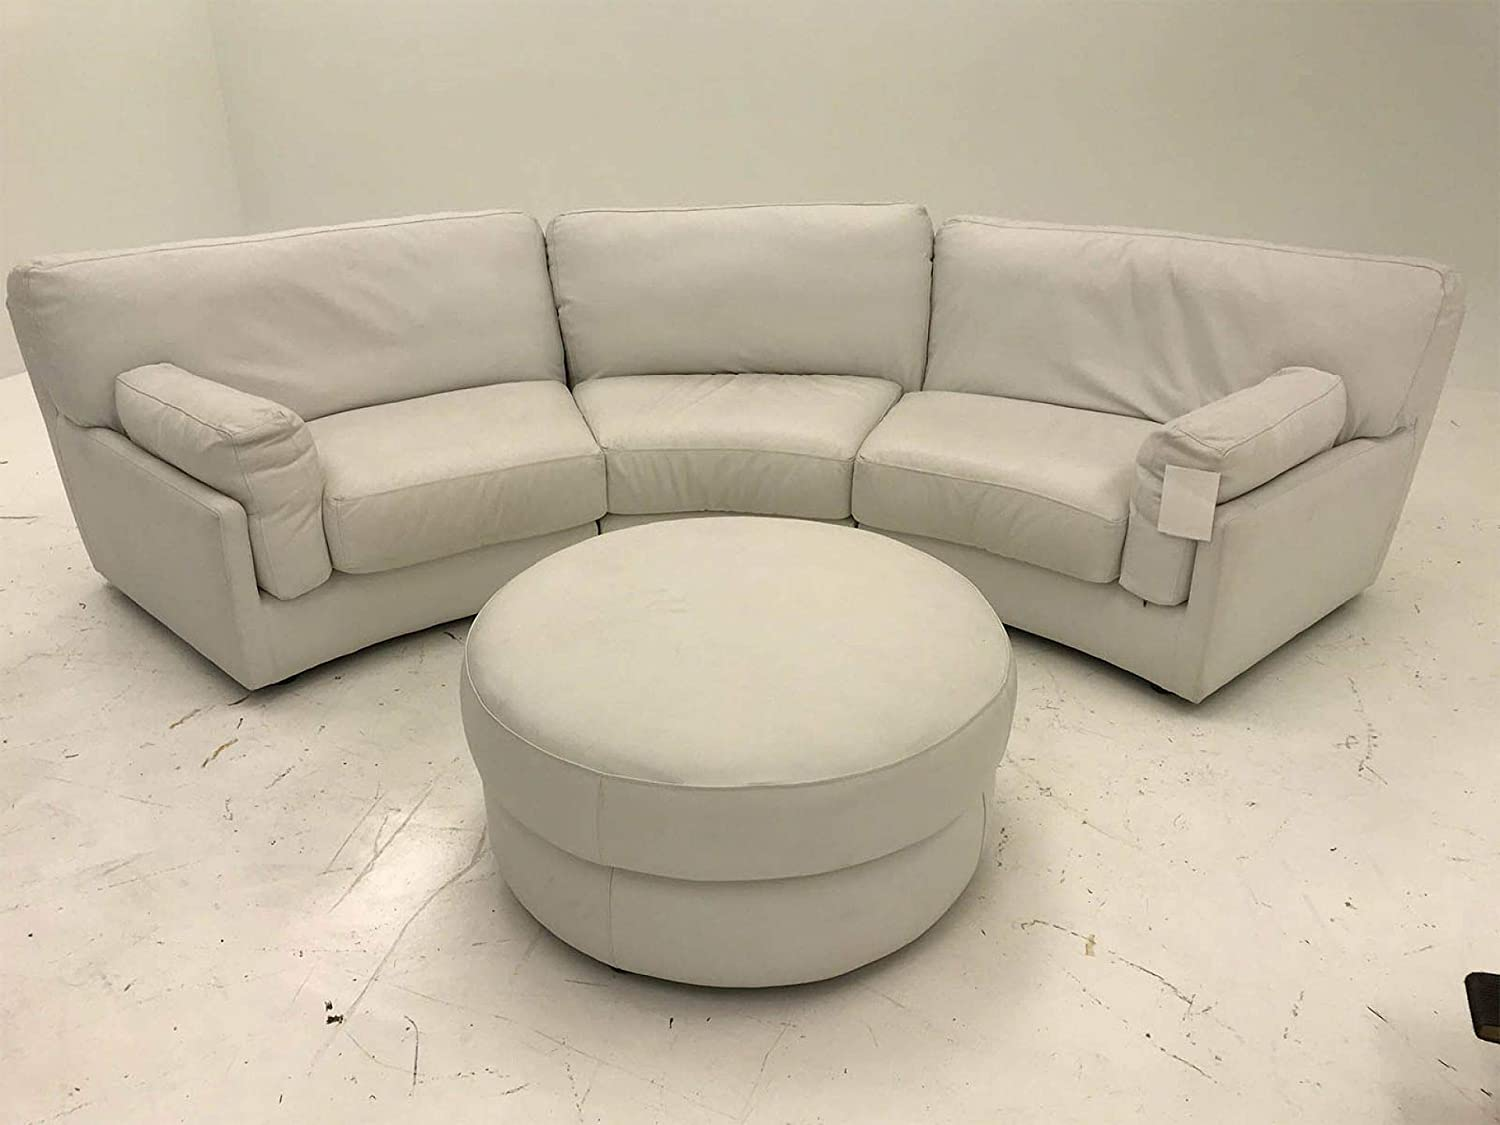 Terrific Amazon Com Curved Sectional With Ottoman White Kitchen Caraccident5 Cool Chair Designs And Ideas Caraccident5Info